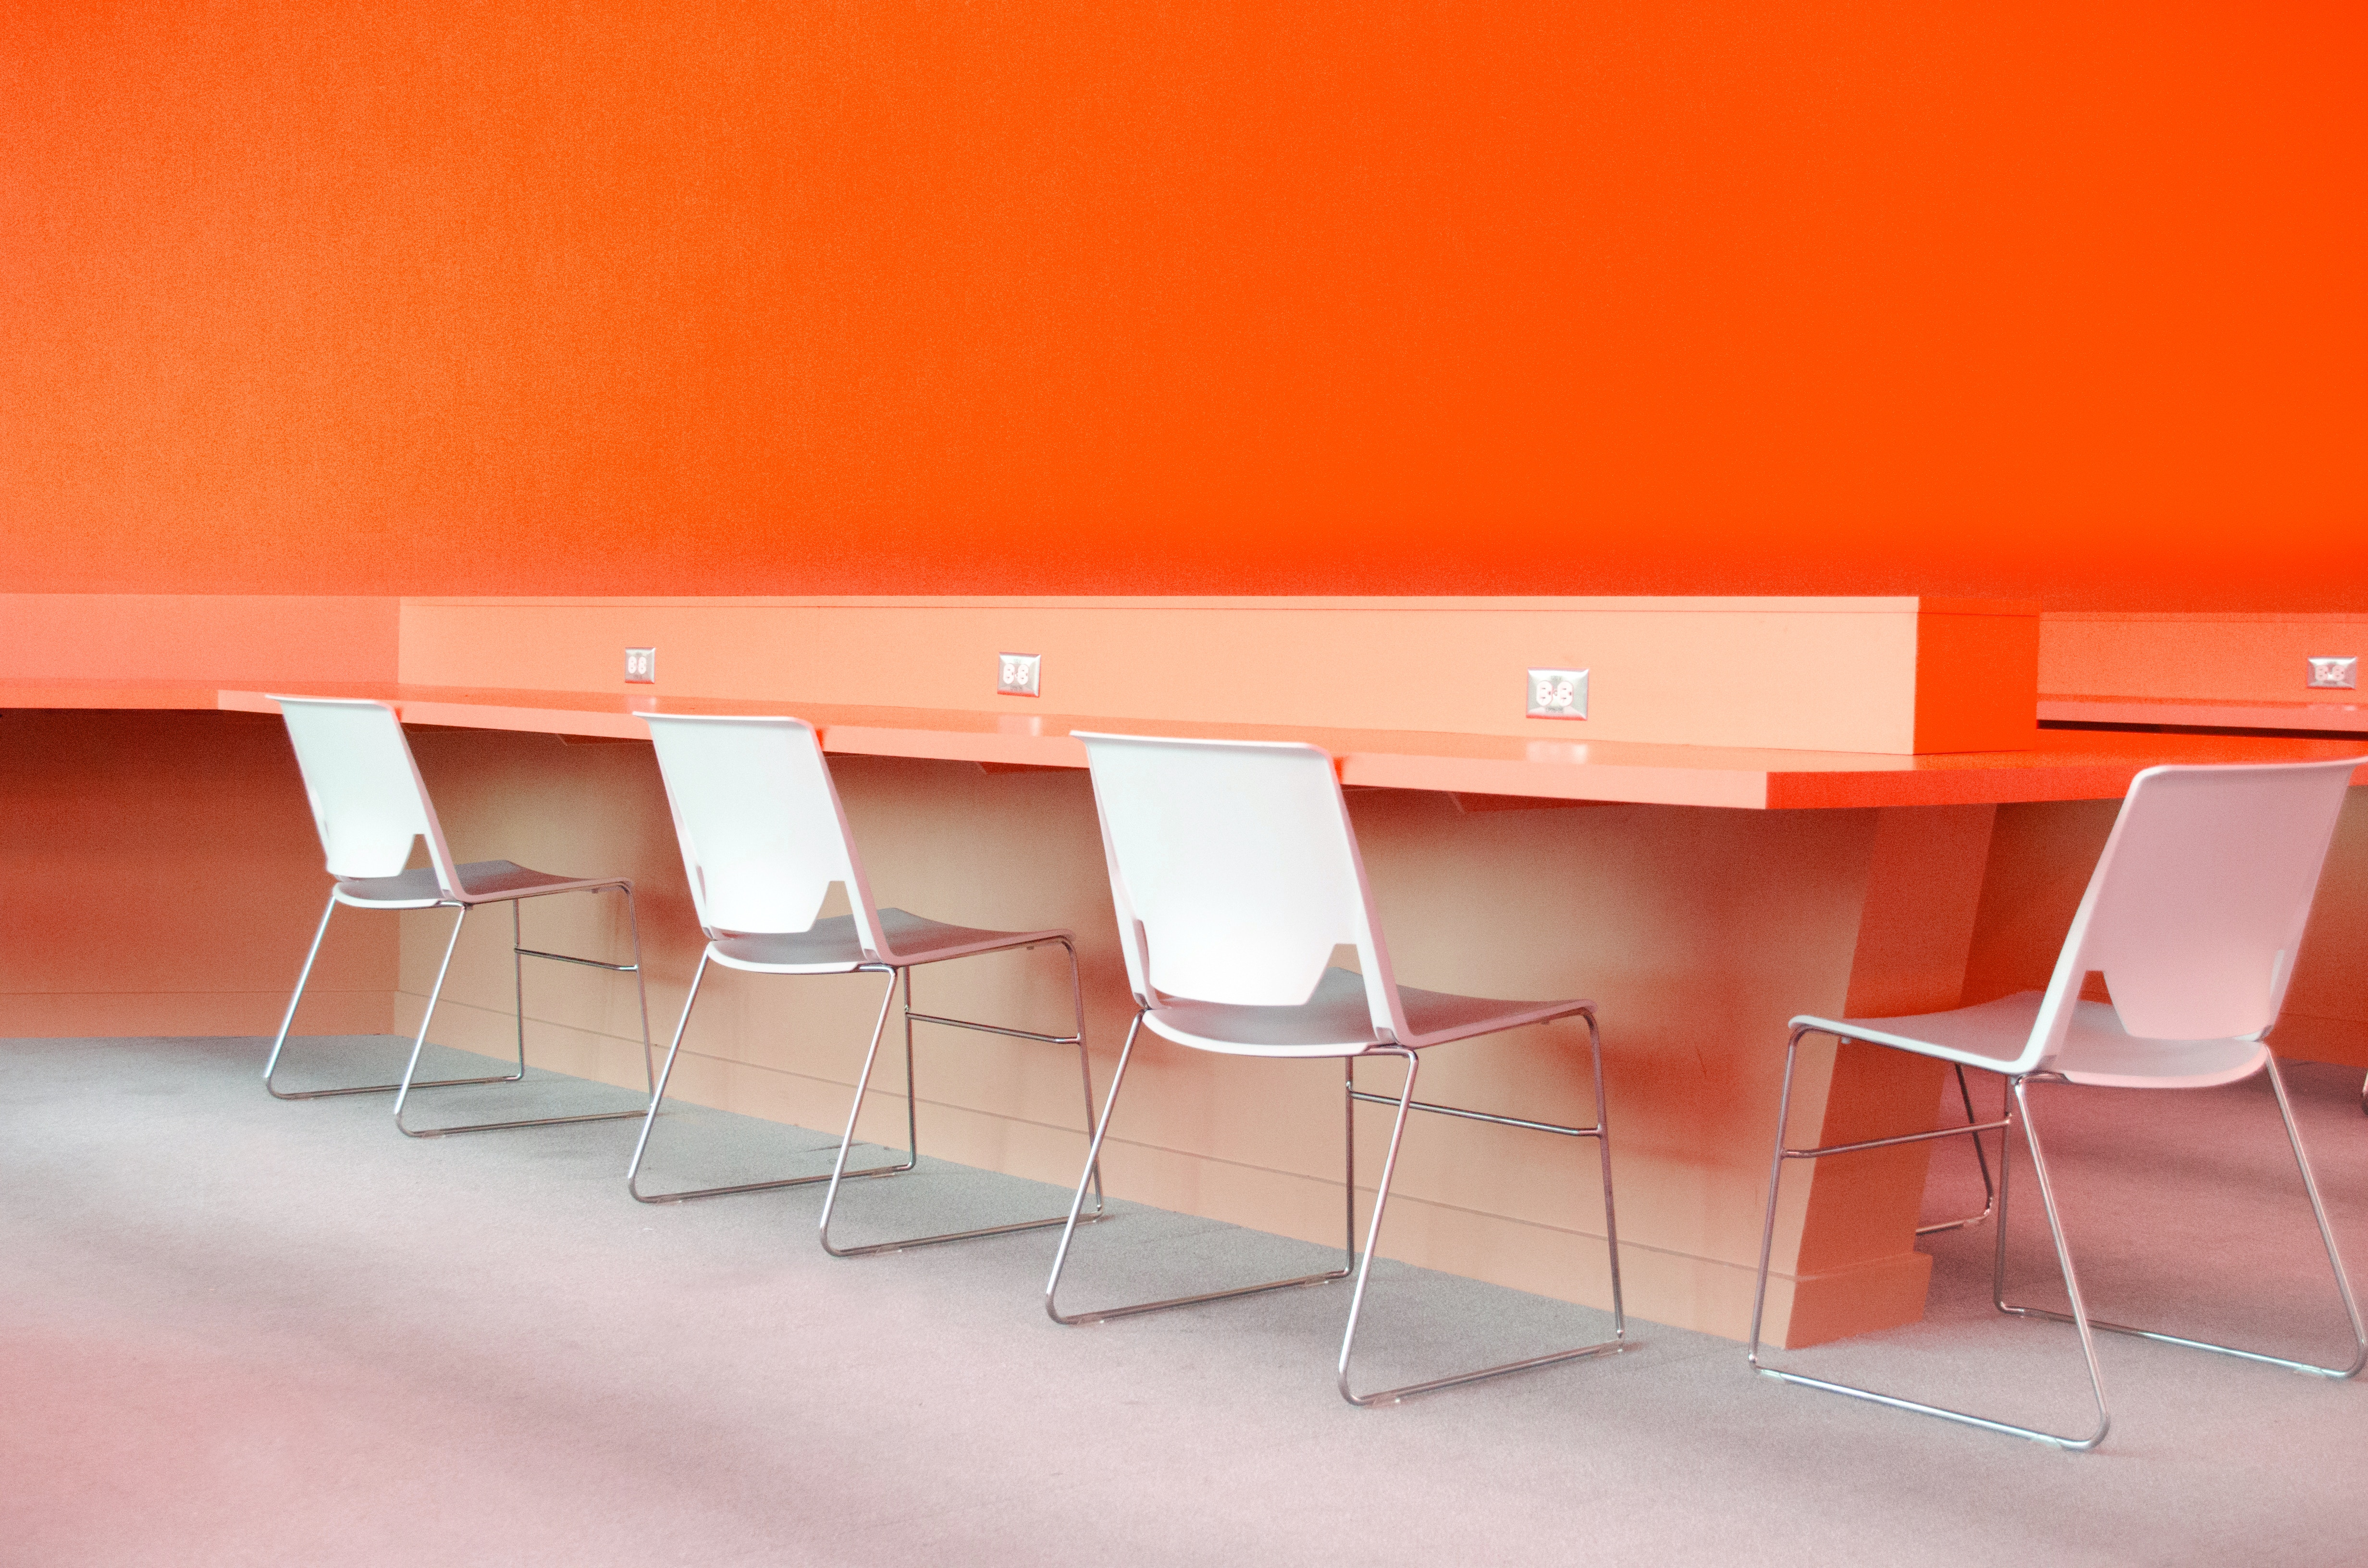 chairs and table in front of orange wall